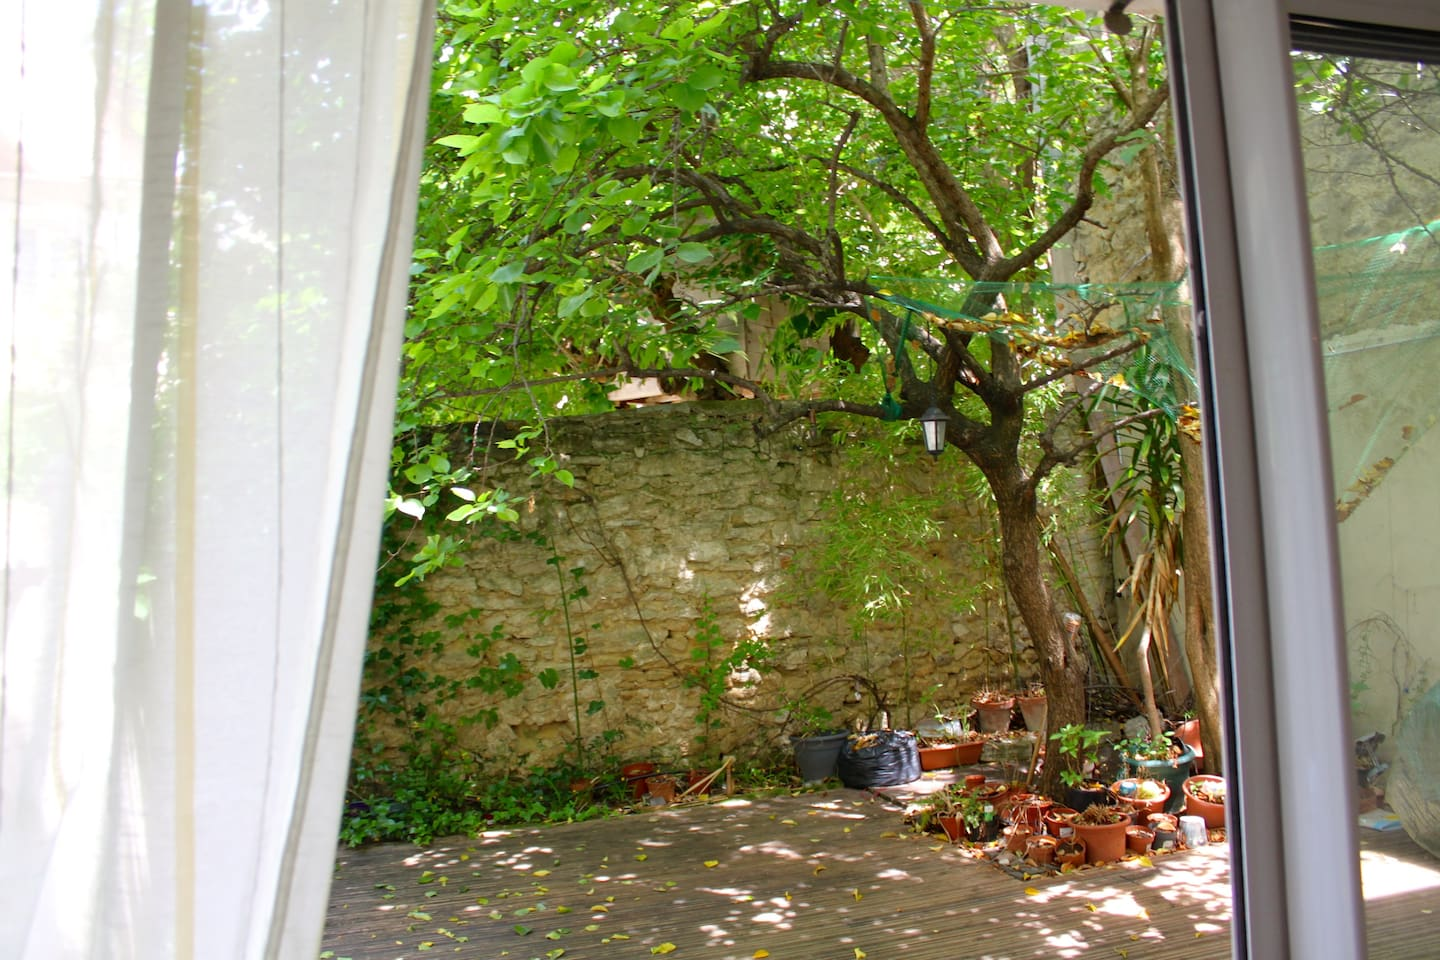 Private couryard, the view from a living room